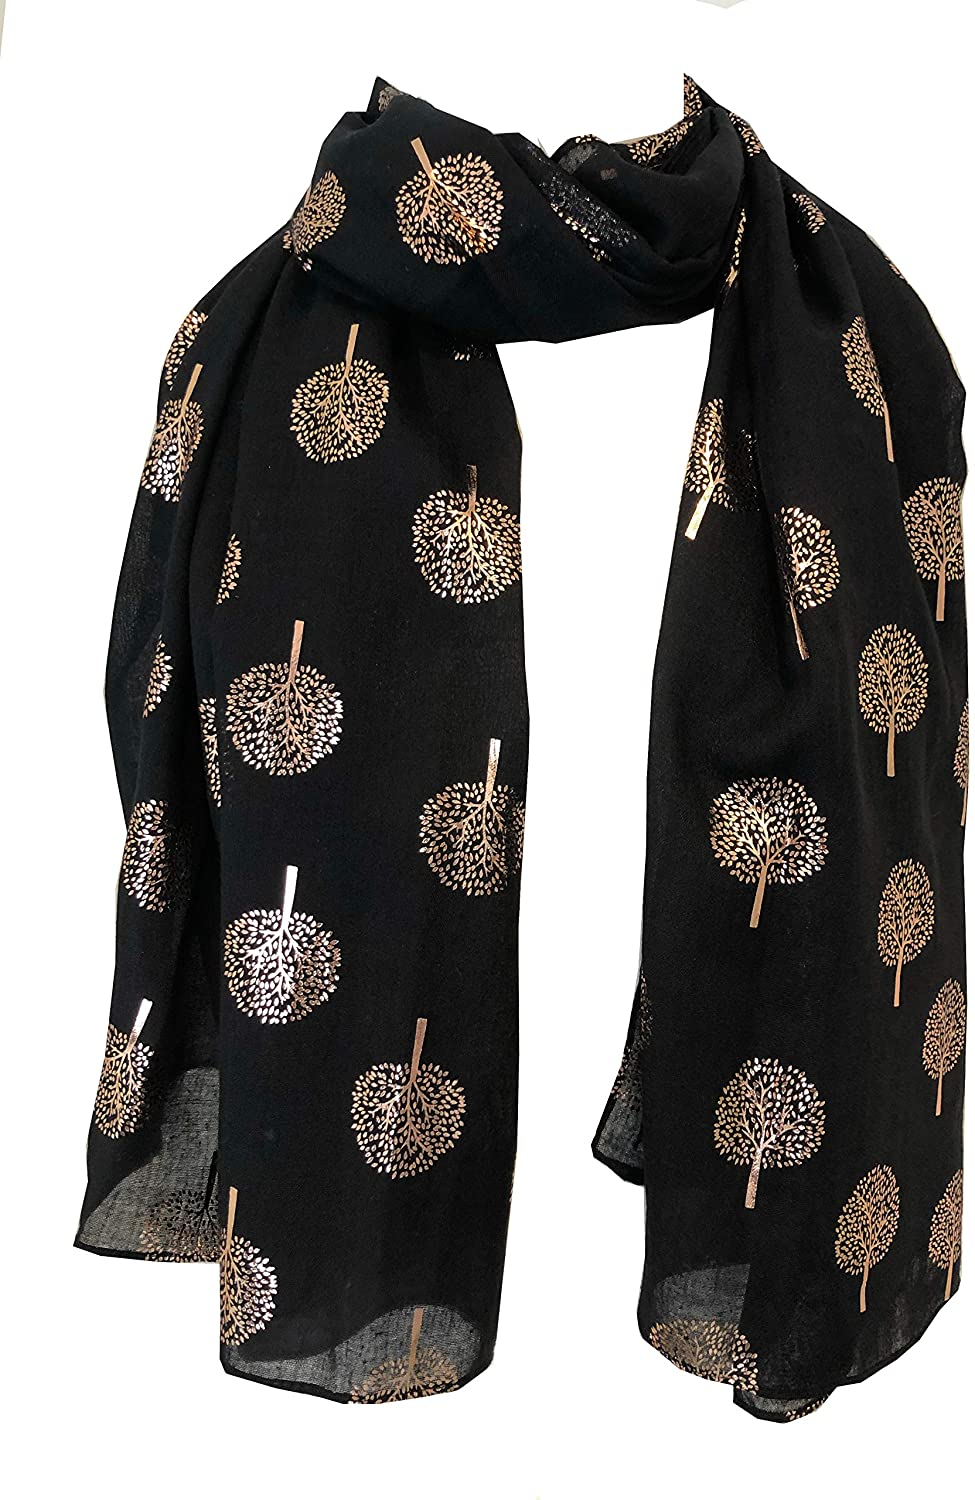 Pamper Yourself Now Black with Gold Foiled Mulberry Tree Design Ladies Scarf/wrap. Great Present for Mum, Sister, Girlfriend or Wife.